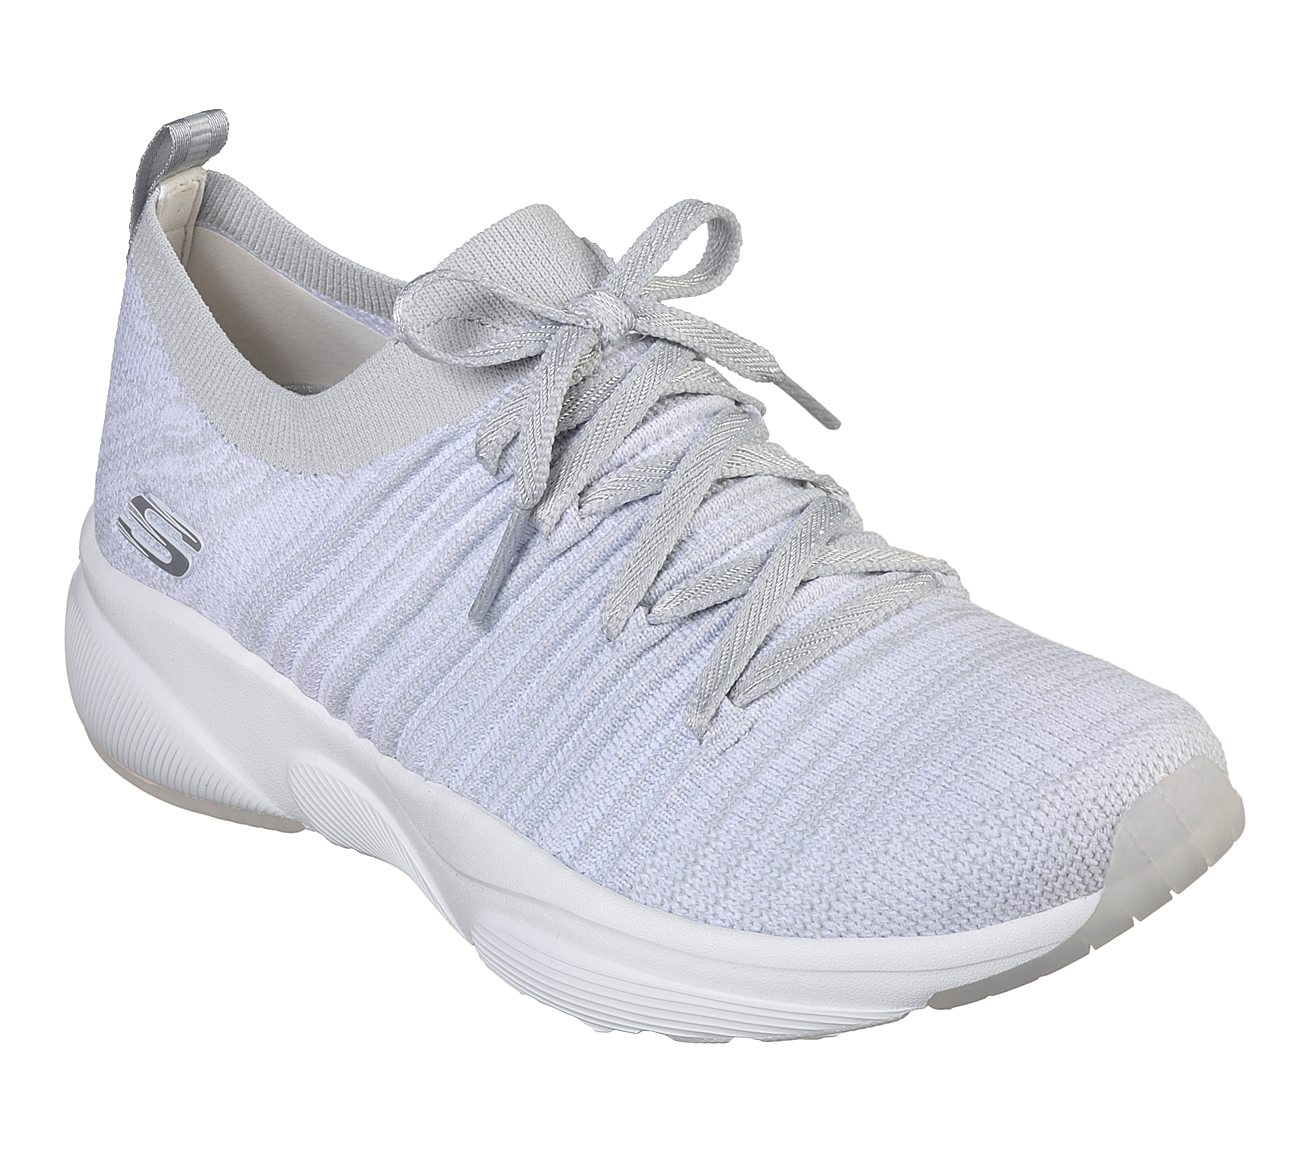 7af4c9e78f33 Buy SKECHERS Meridian Sport Shoes only  70.00